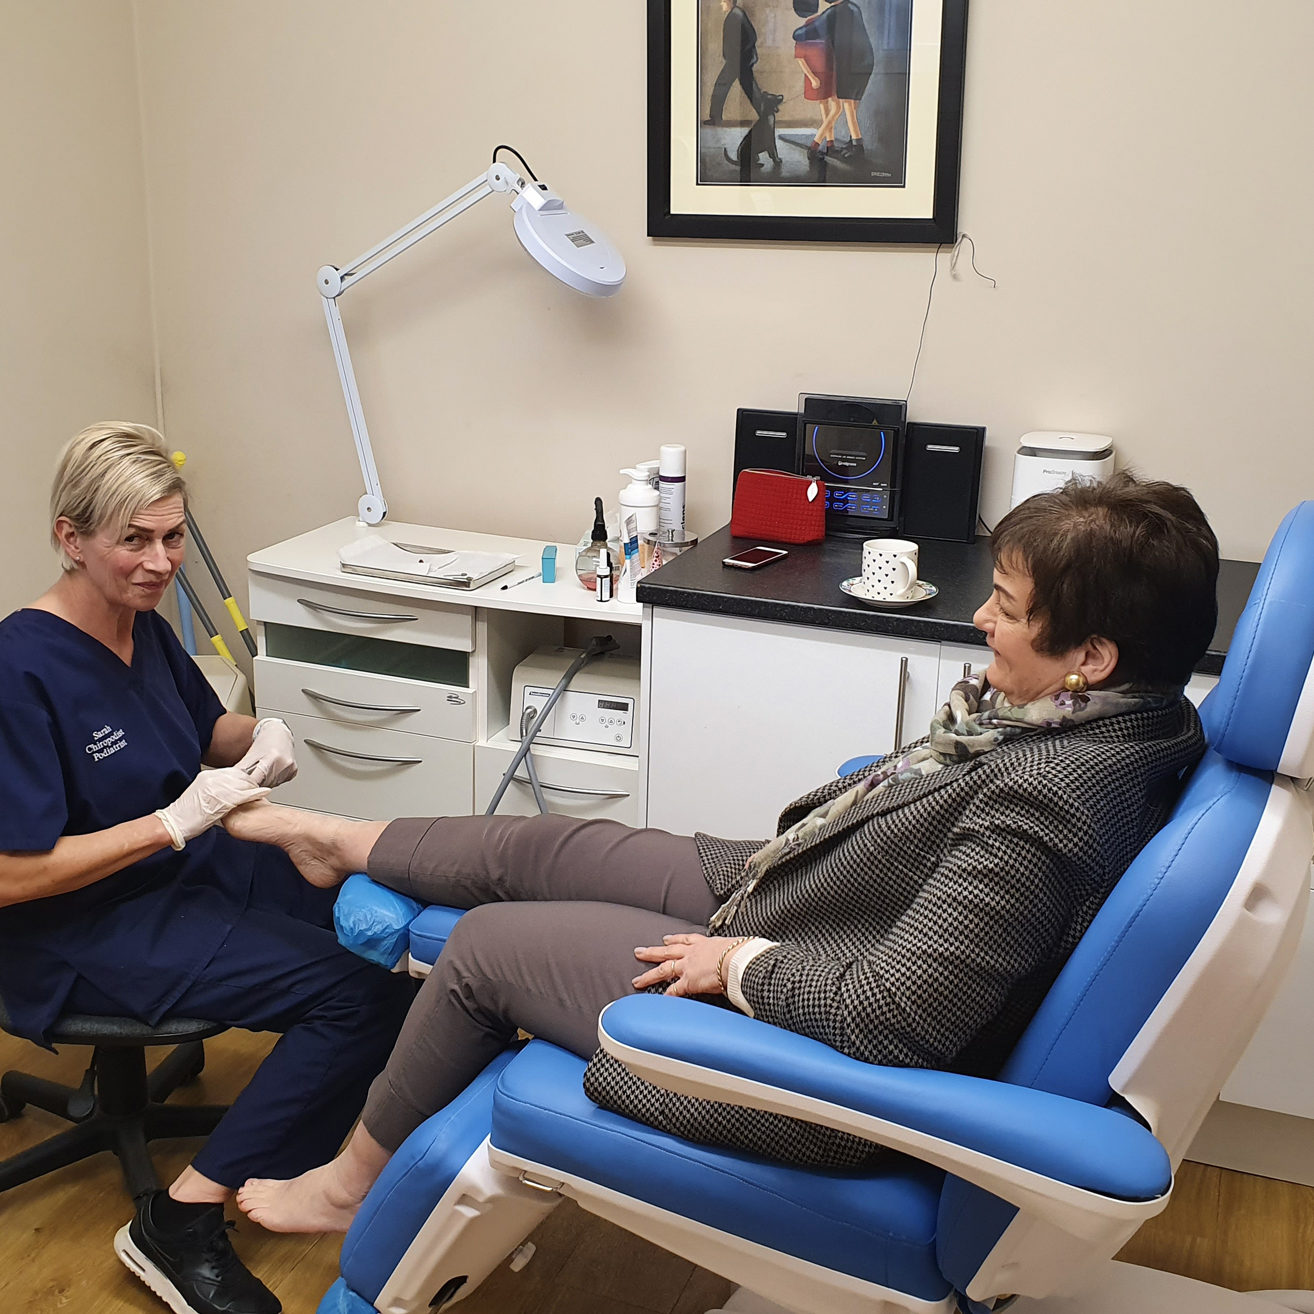 crossgates-chiropody-treatment-room